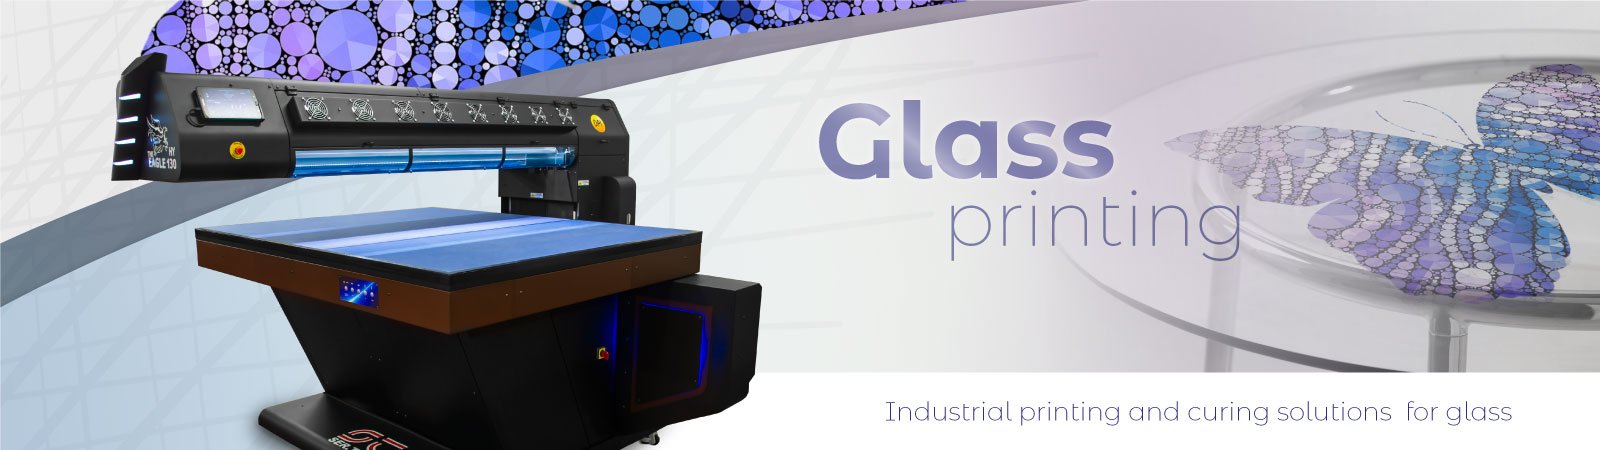 industrial printers glass